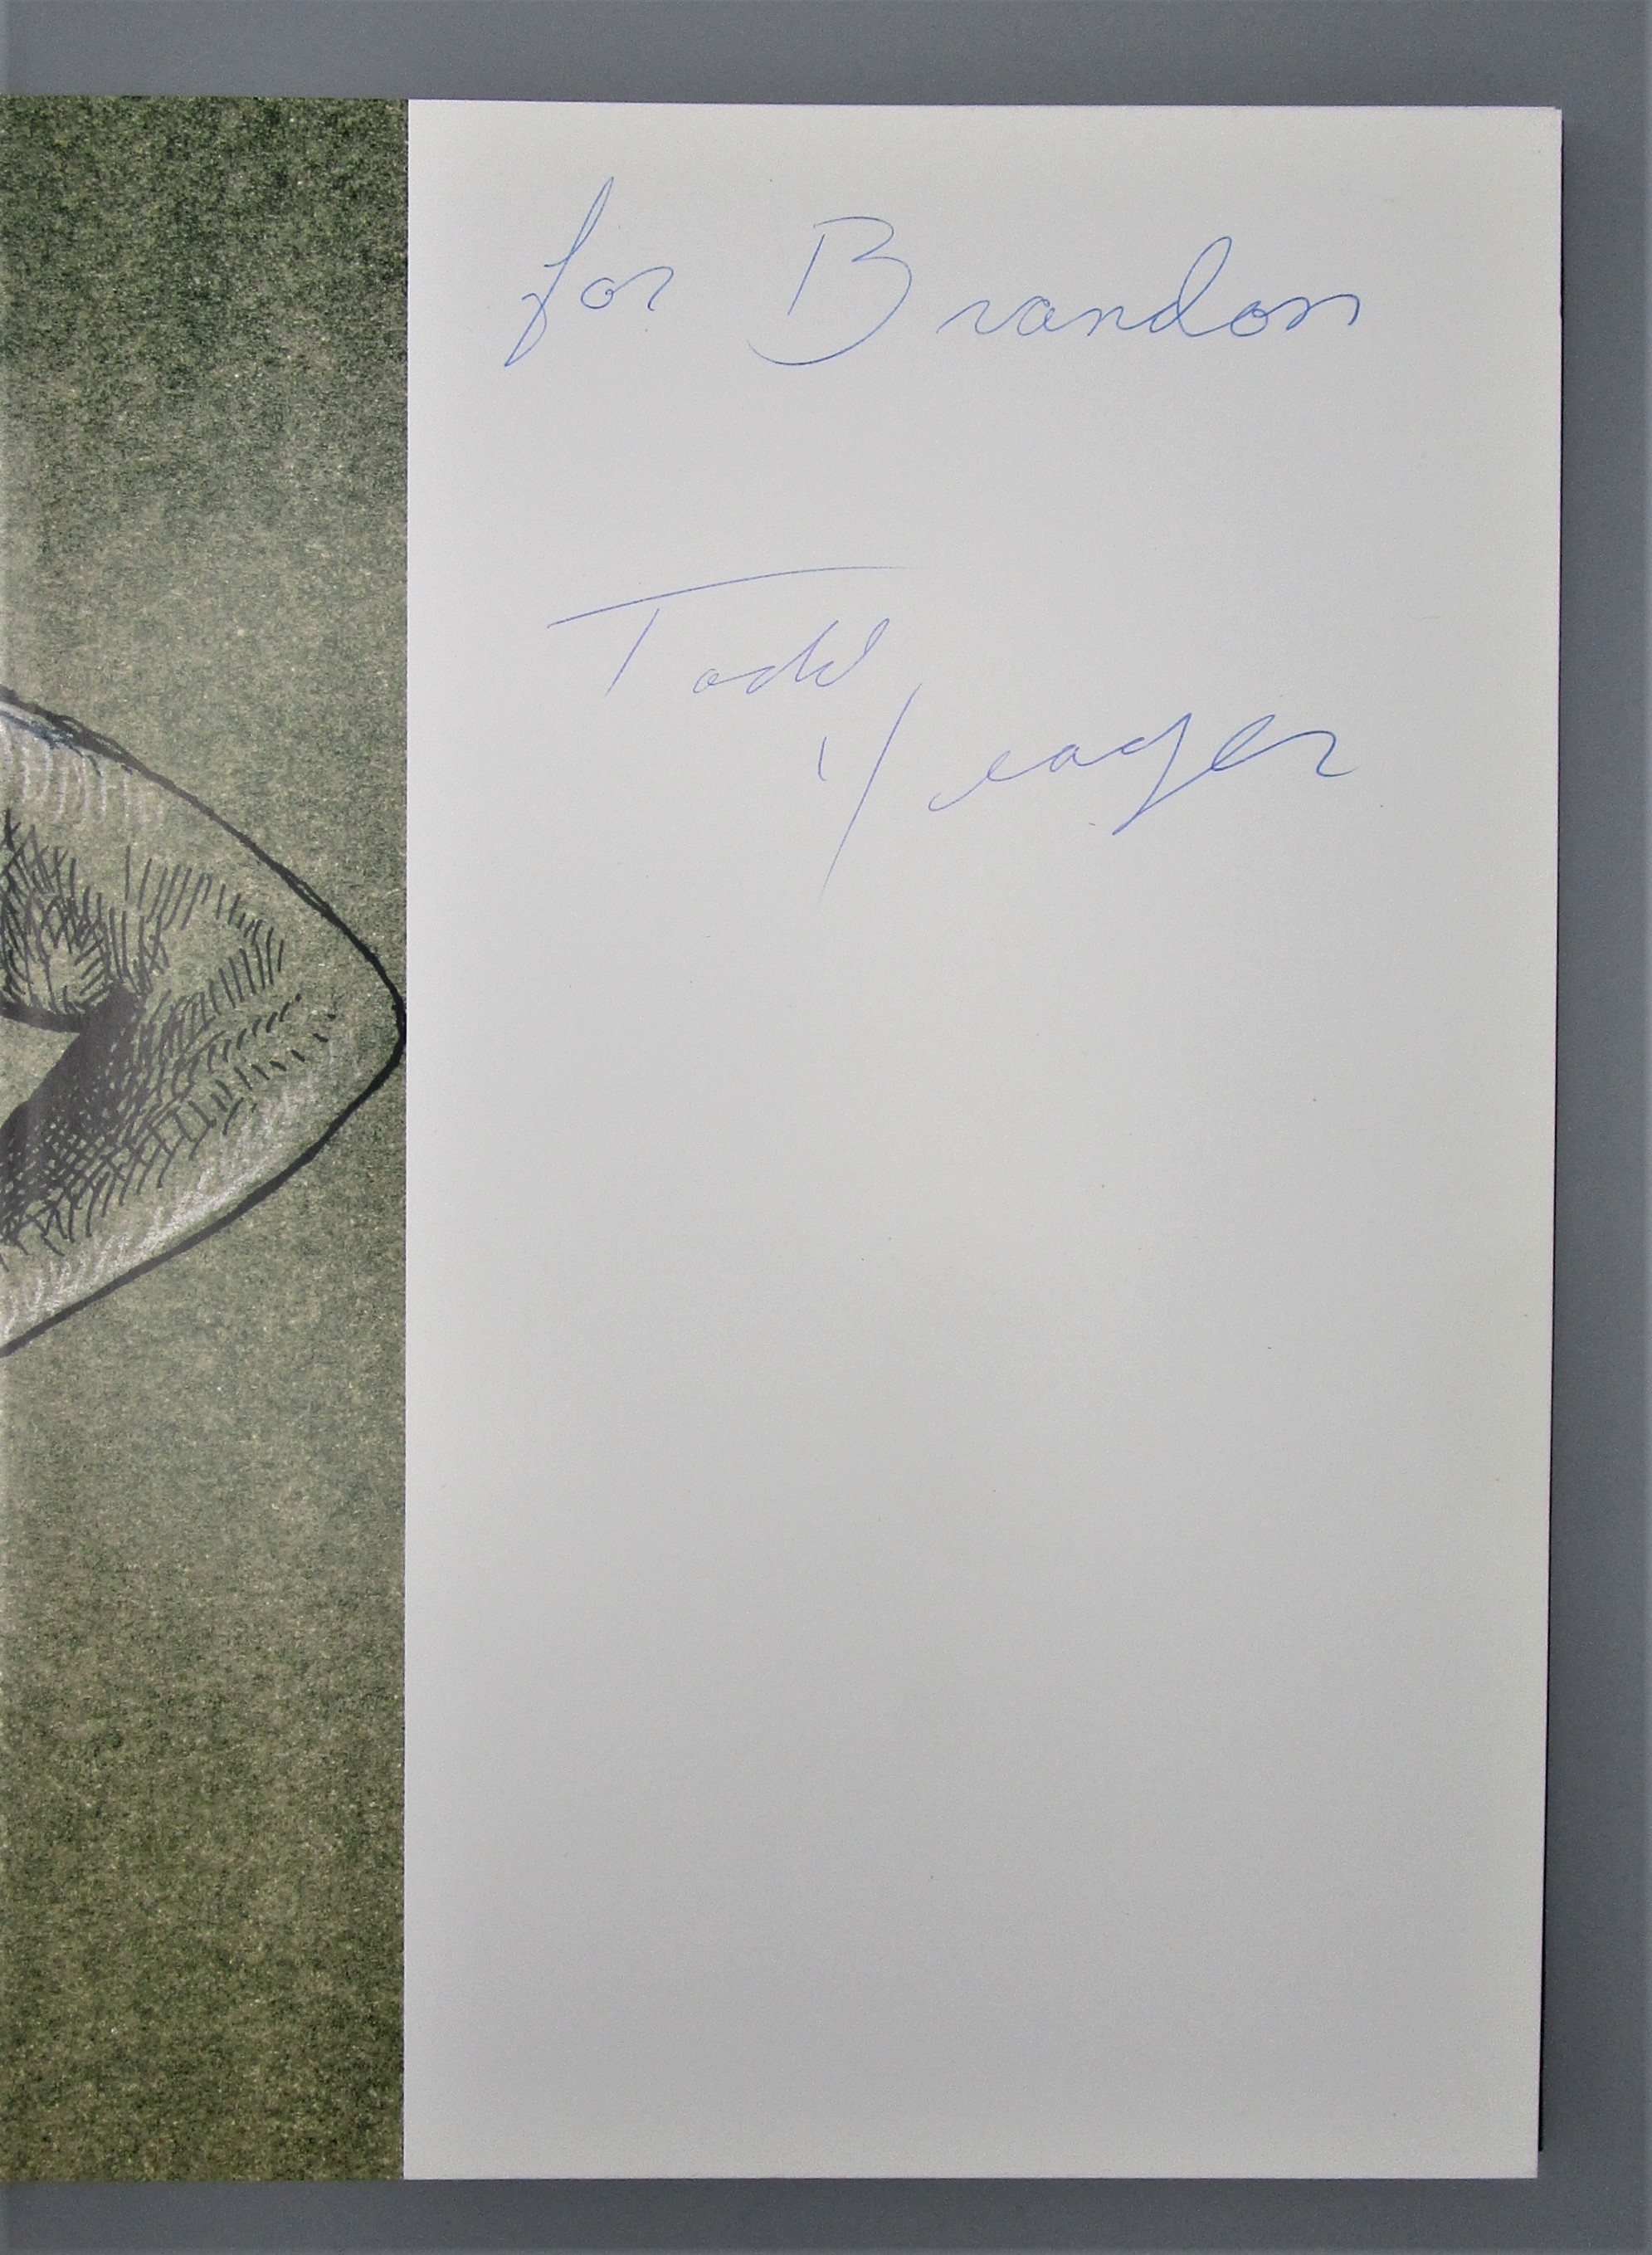 RASCALS. THE EROTIC FANTASIES OF TODD YEAGER , by Todd Yeager - 2008 [Signed]